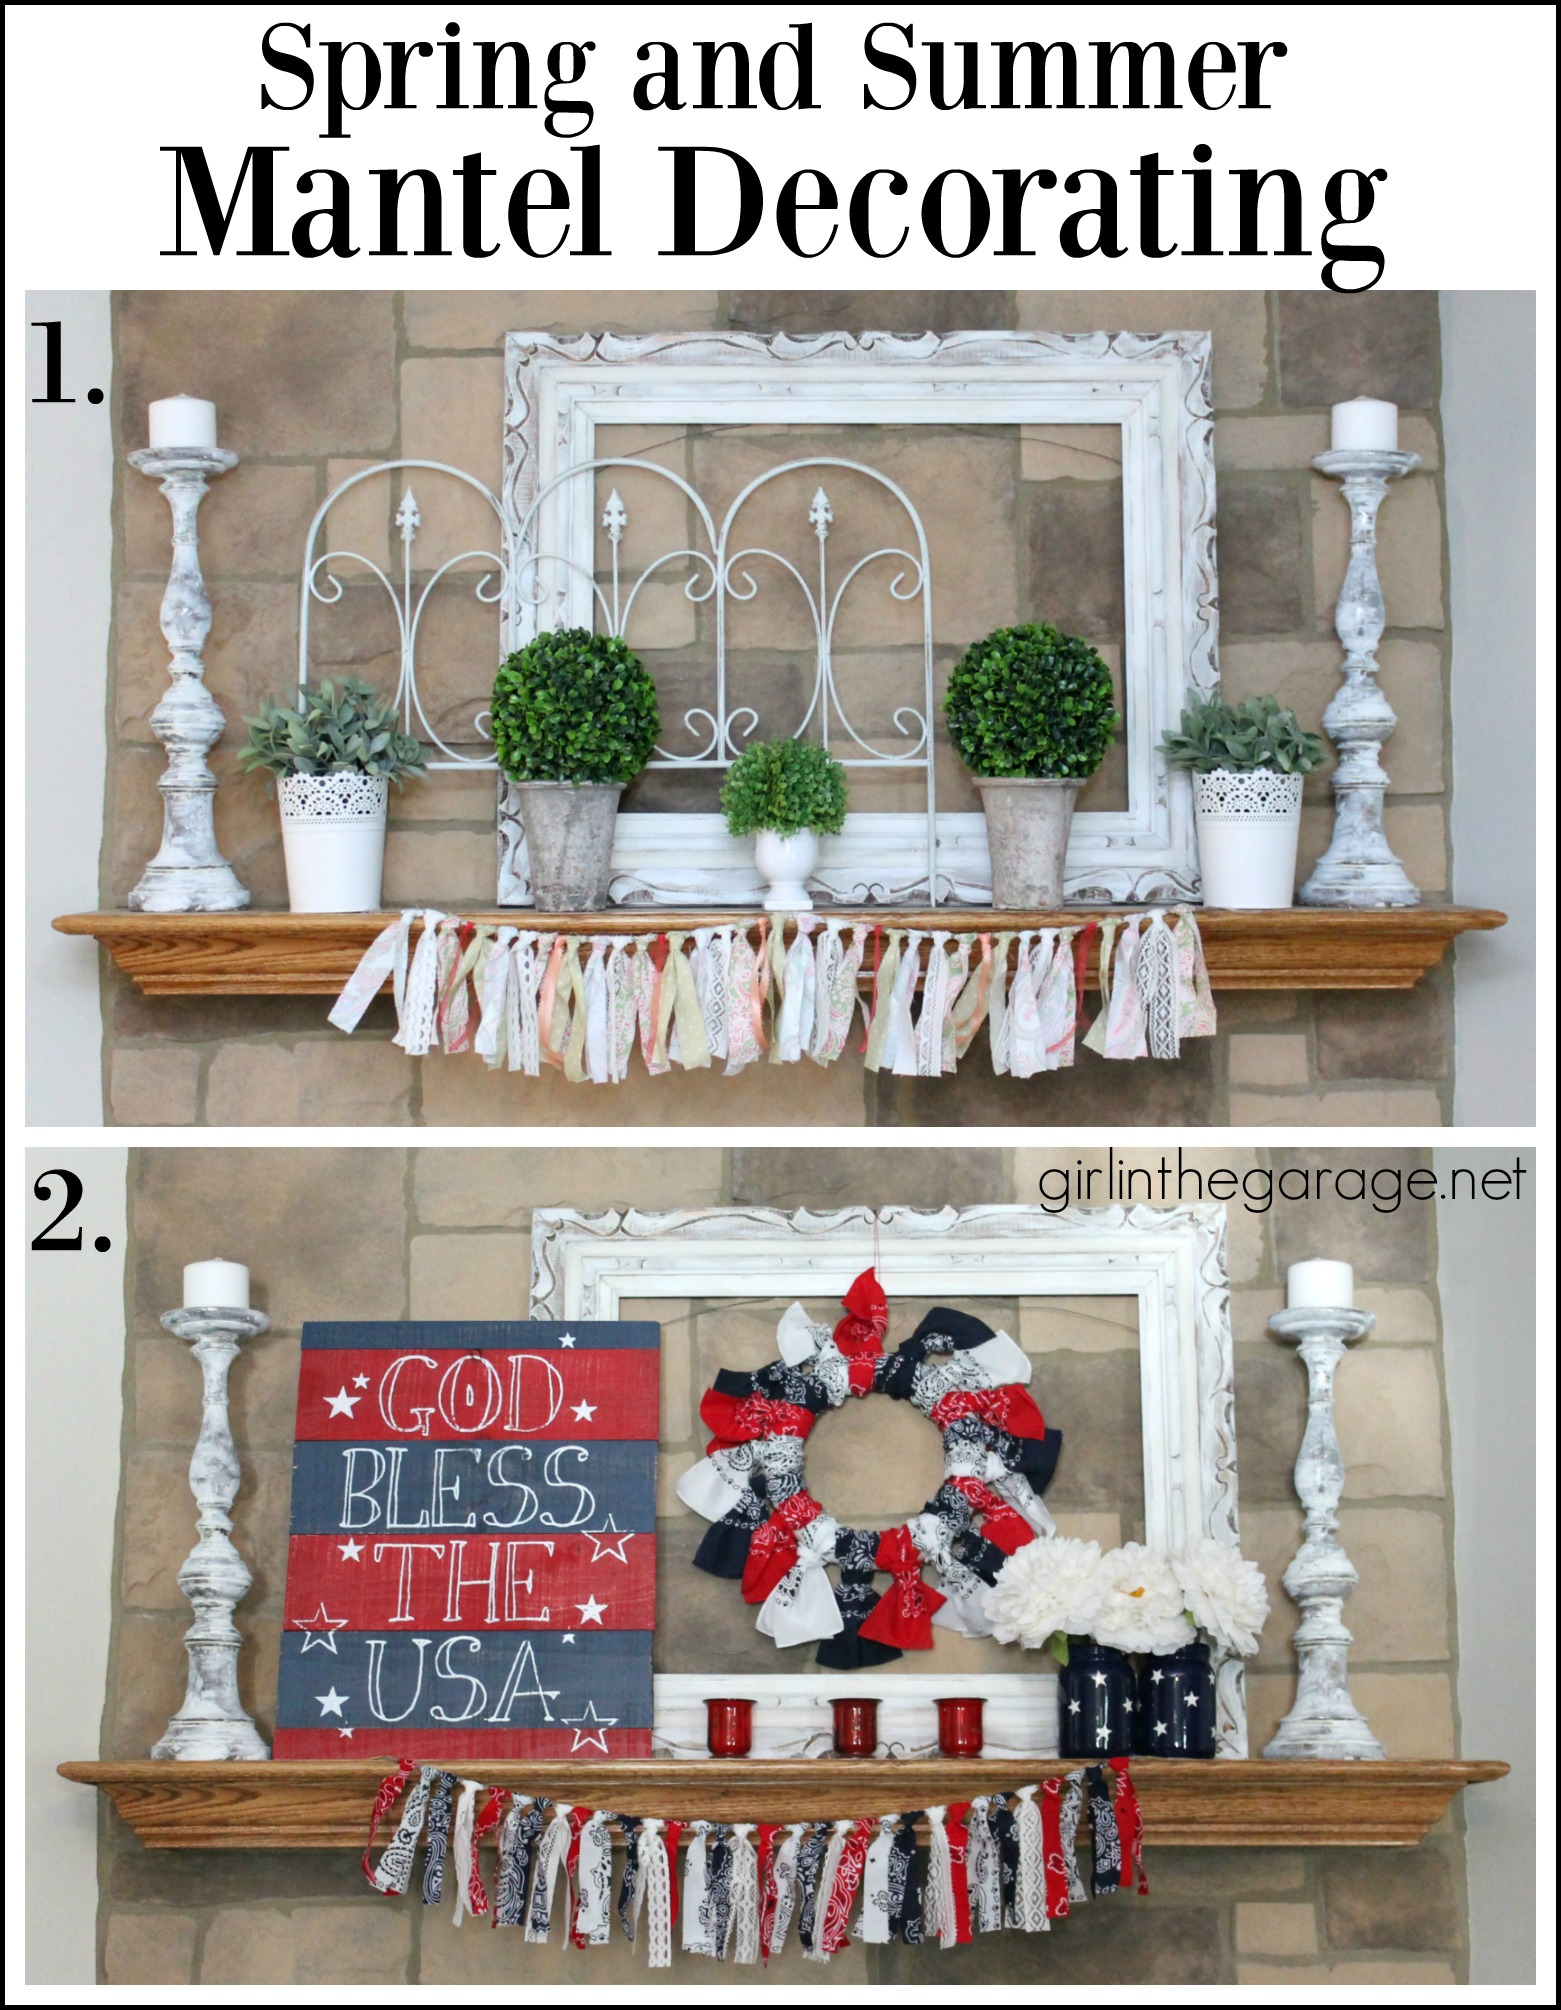 Spring and summer mantel decorating - Girl in the Garage